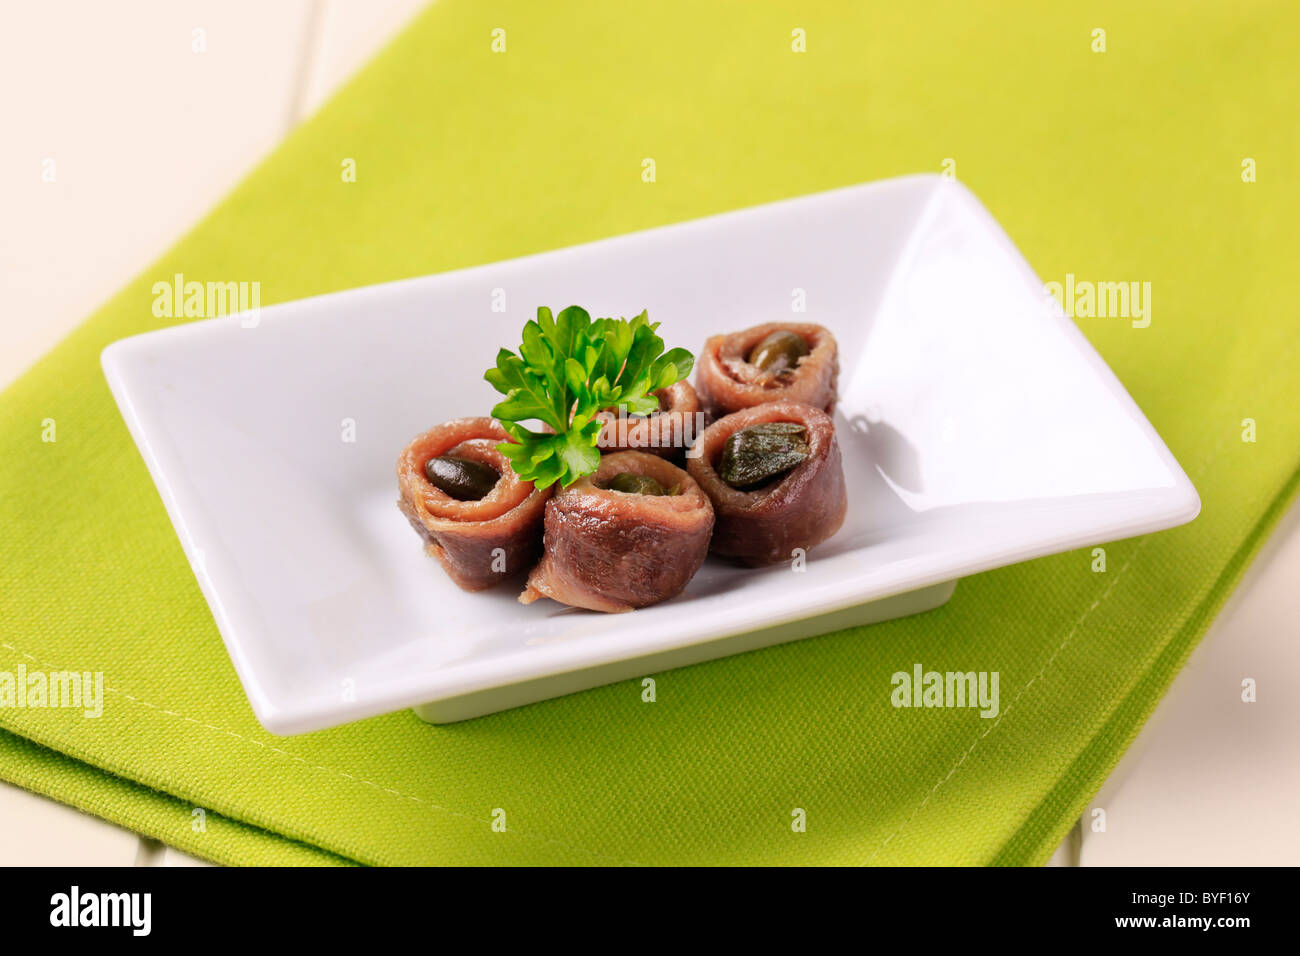 Rolled up anchovy fillets filled with capers - Stock Image